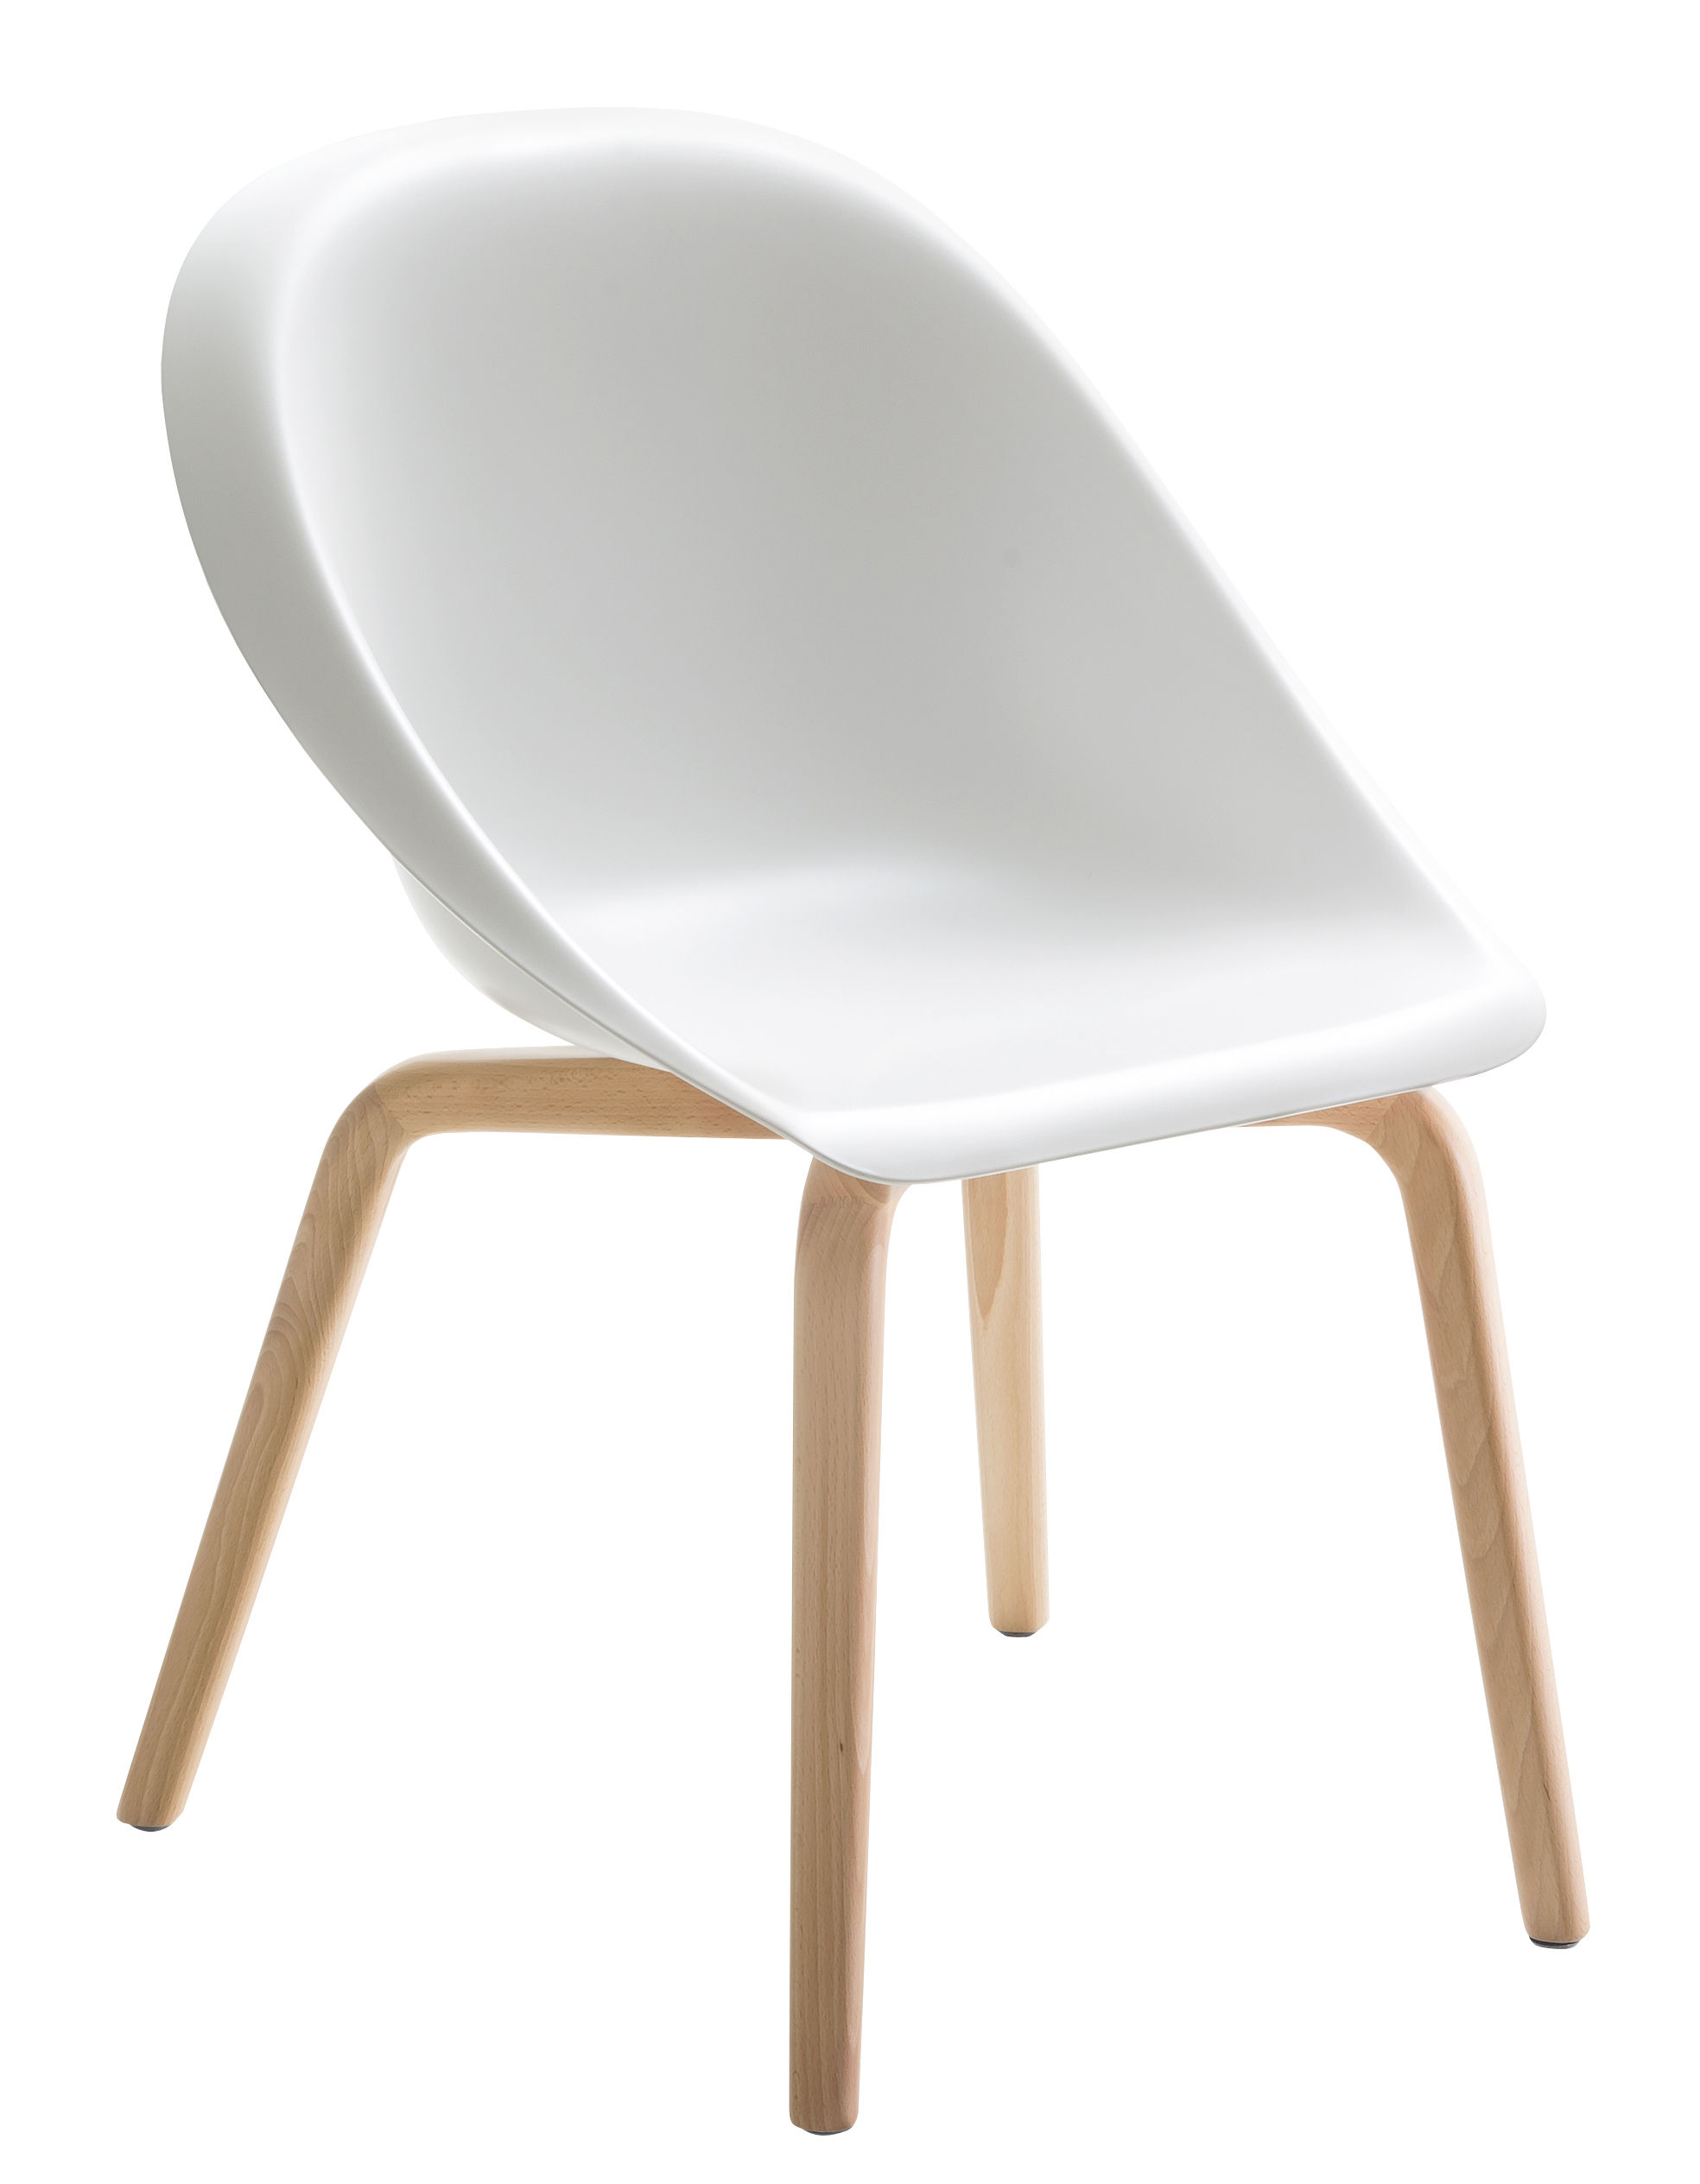 Furniture - Chairs - Hoop Armchair - Wood legs by B-LINE - White / Wood - Natural beechwood, Polyurethane